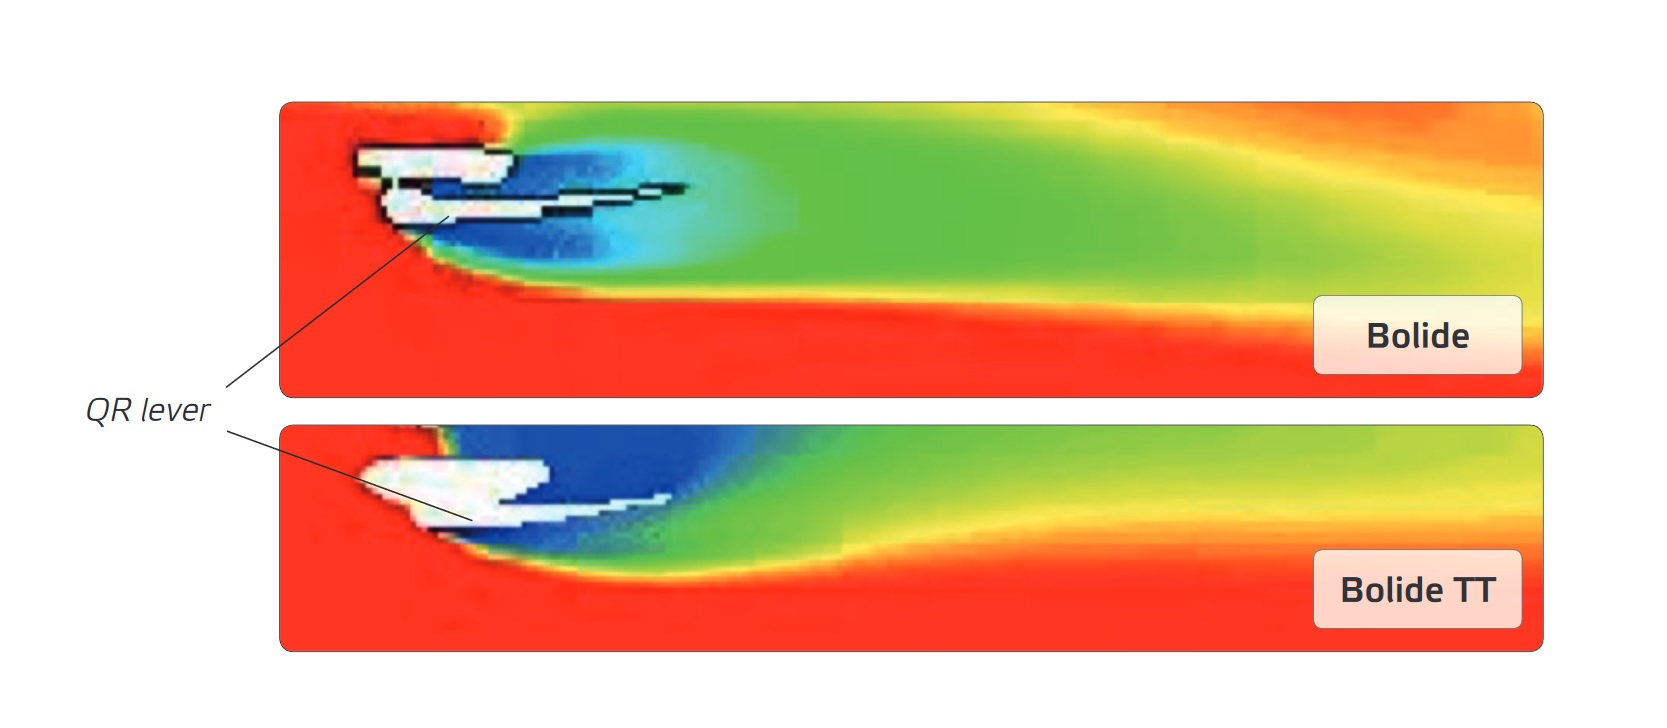 CFD image of the drag generated by quick releases of the Pinarello Bolide HR and Bolide TT